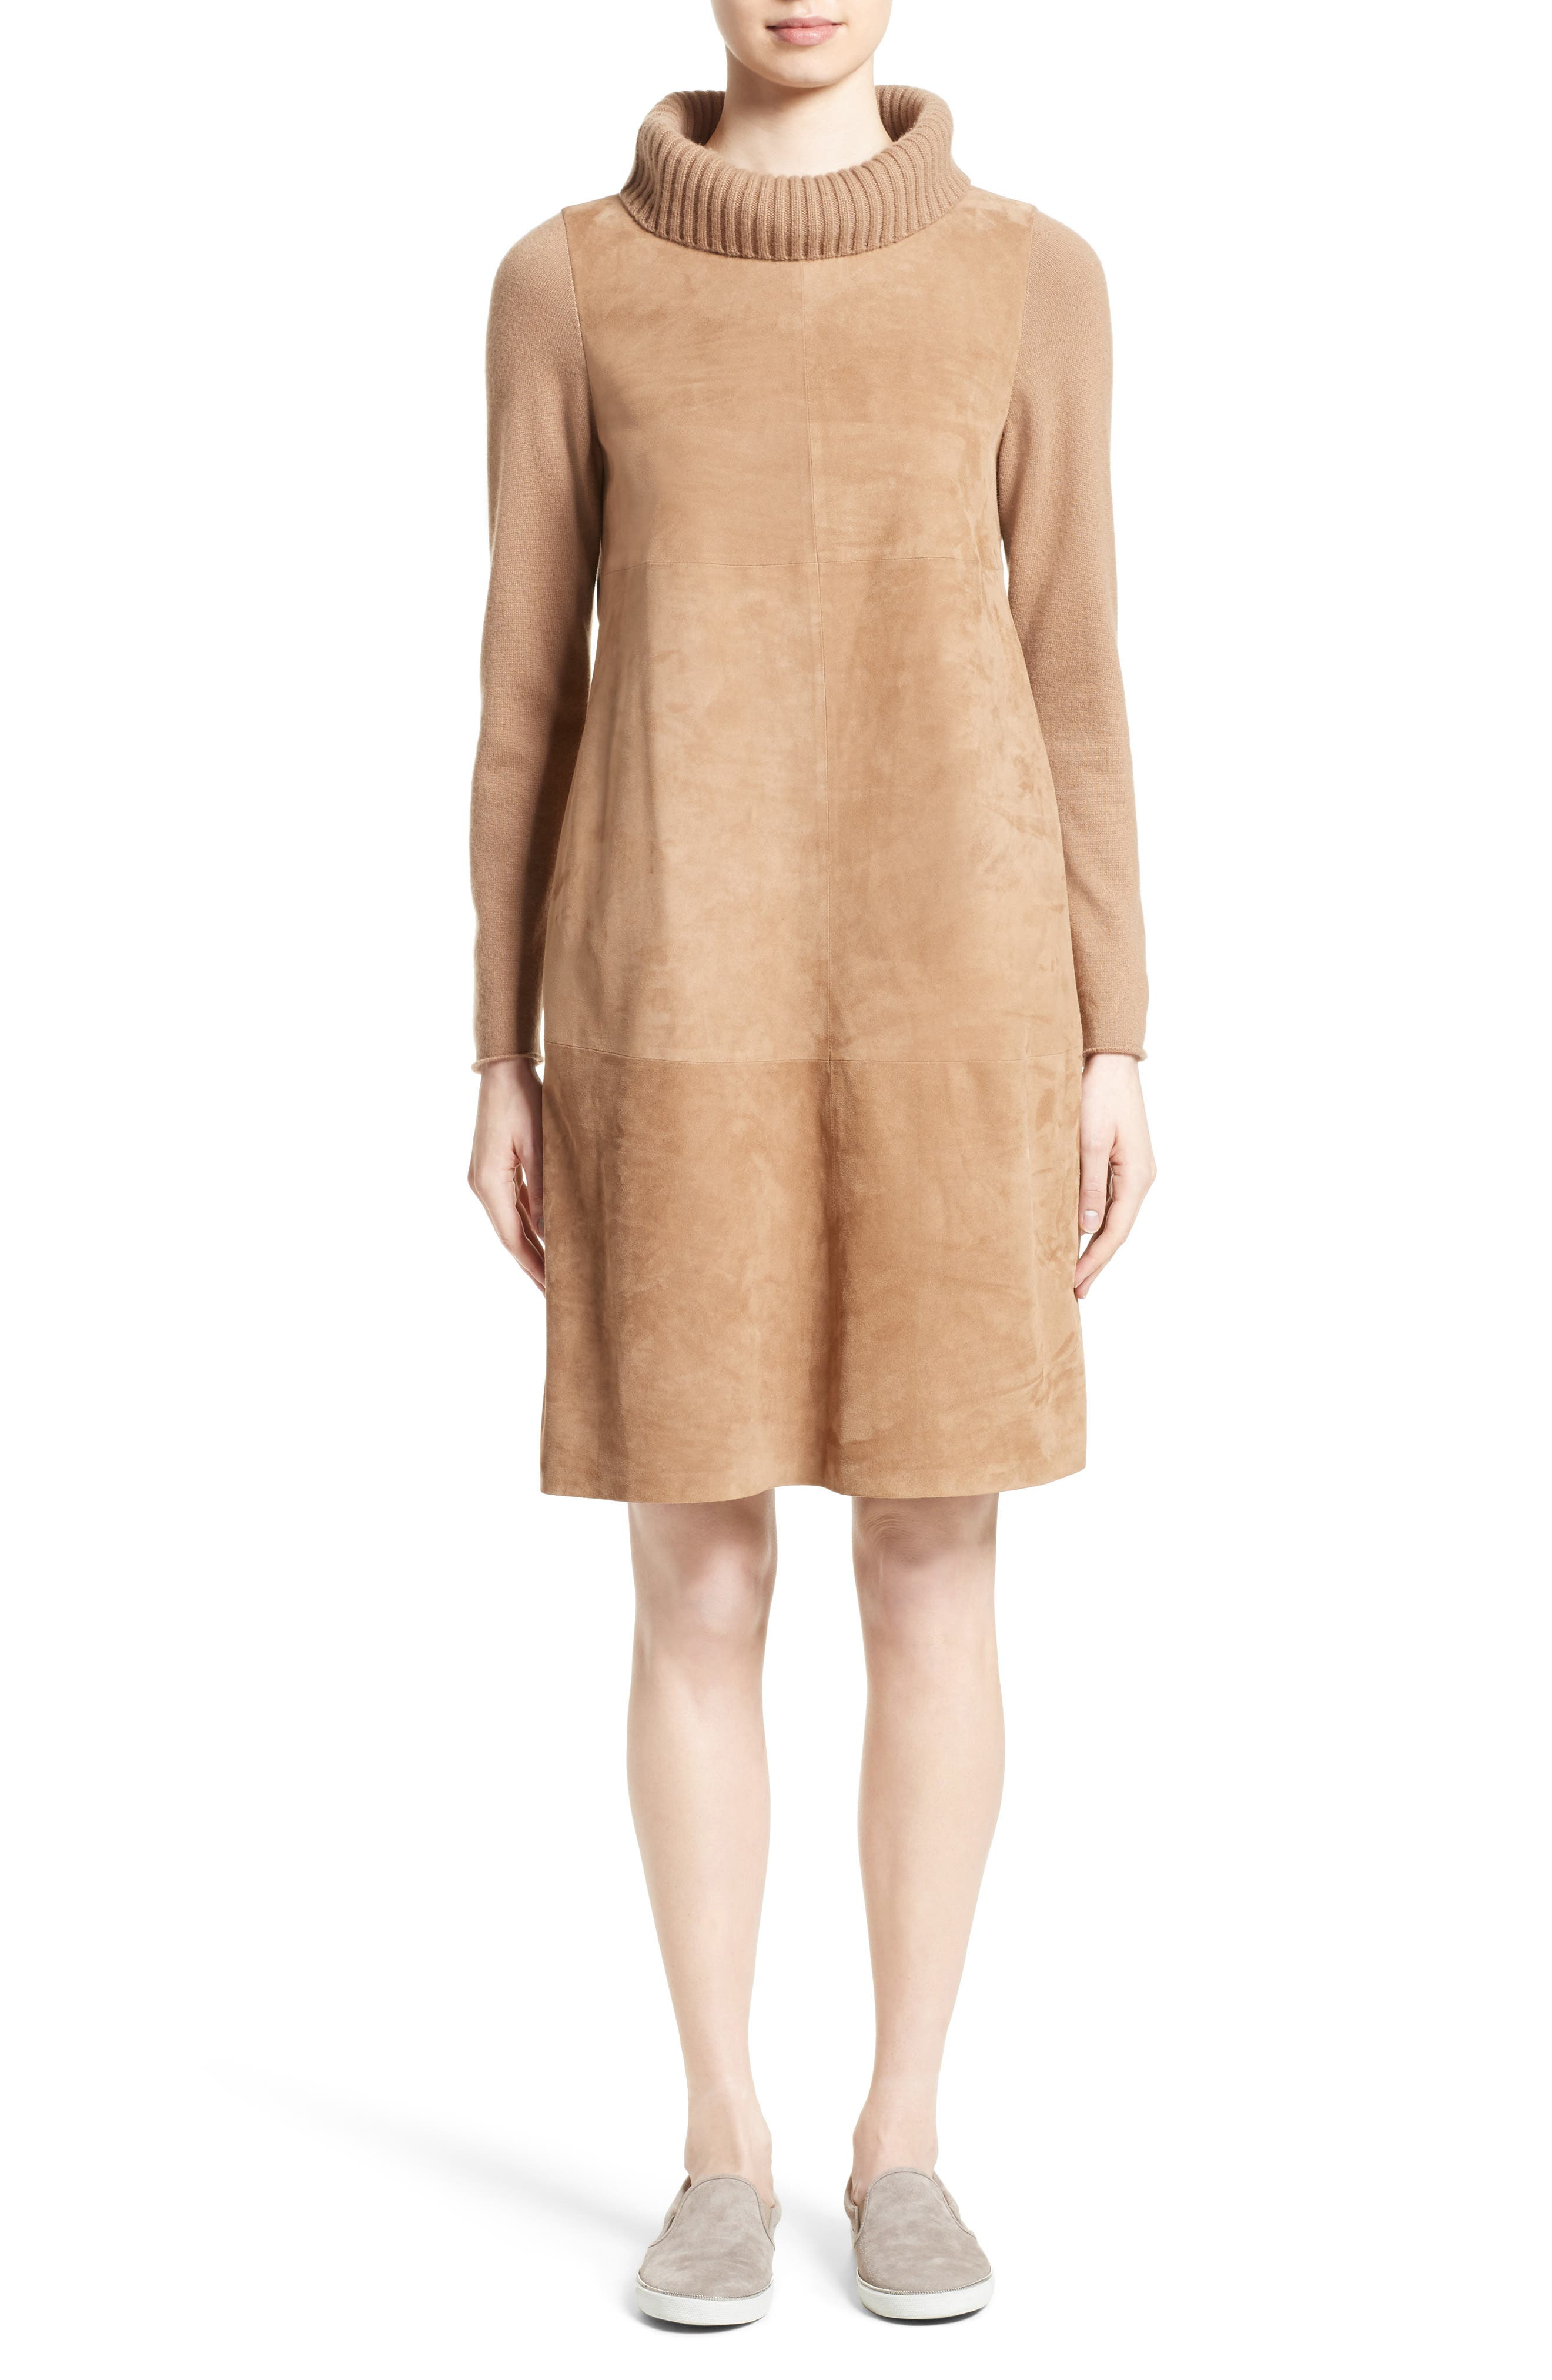 Fabiana Filippi Suede & Cashmere Dress